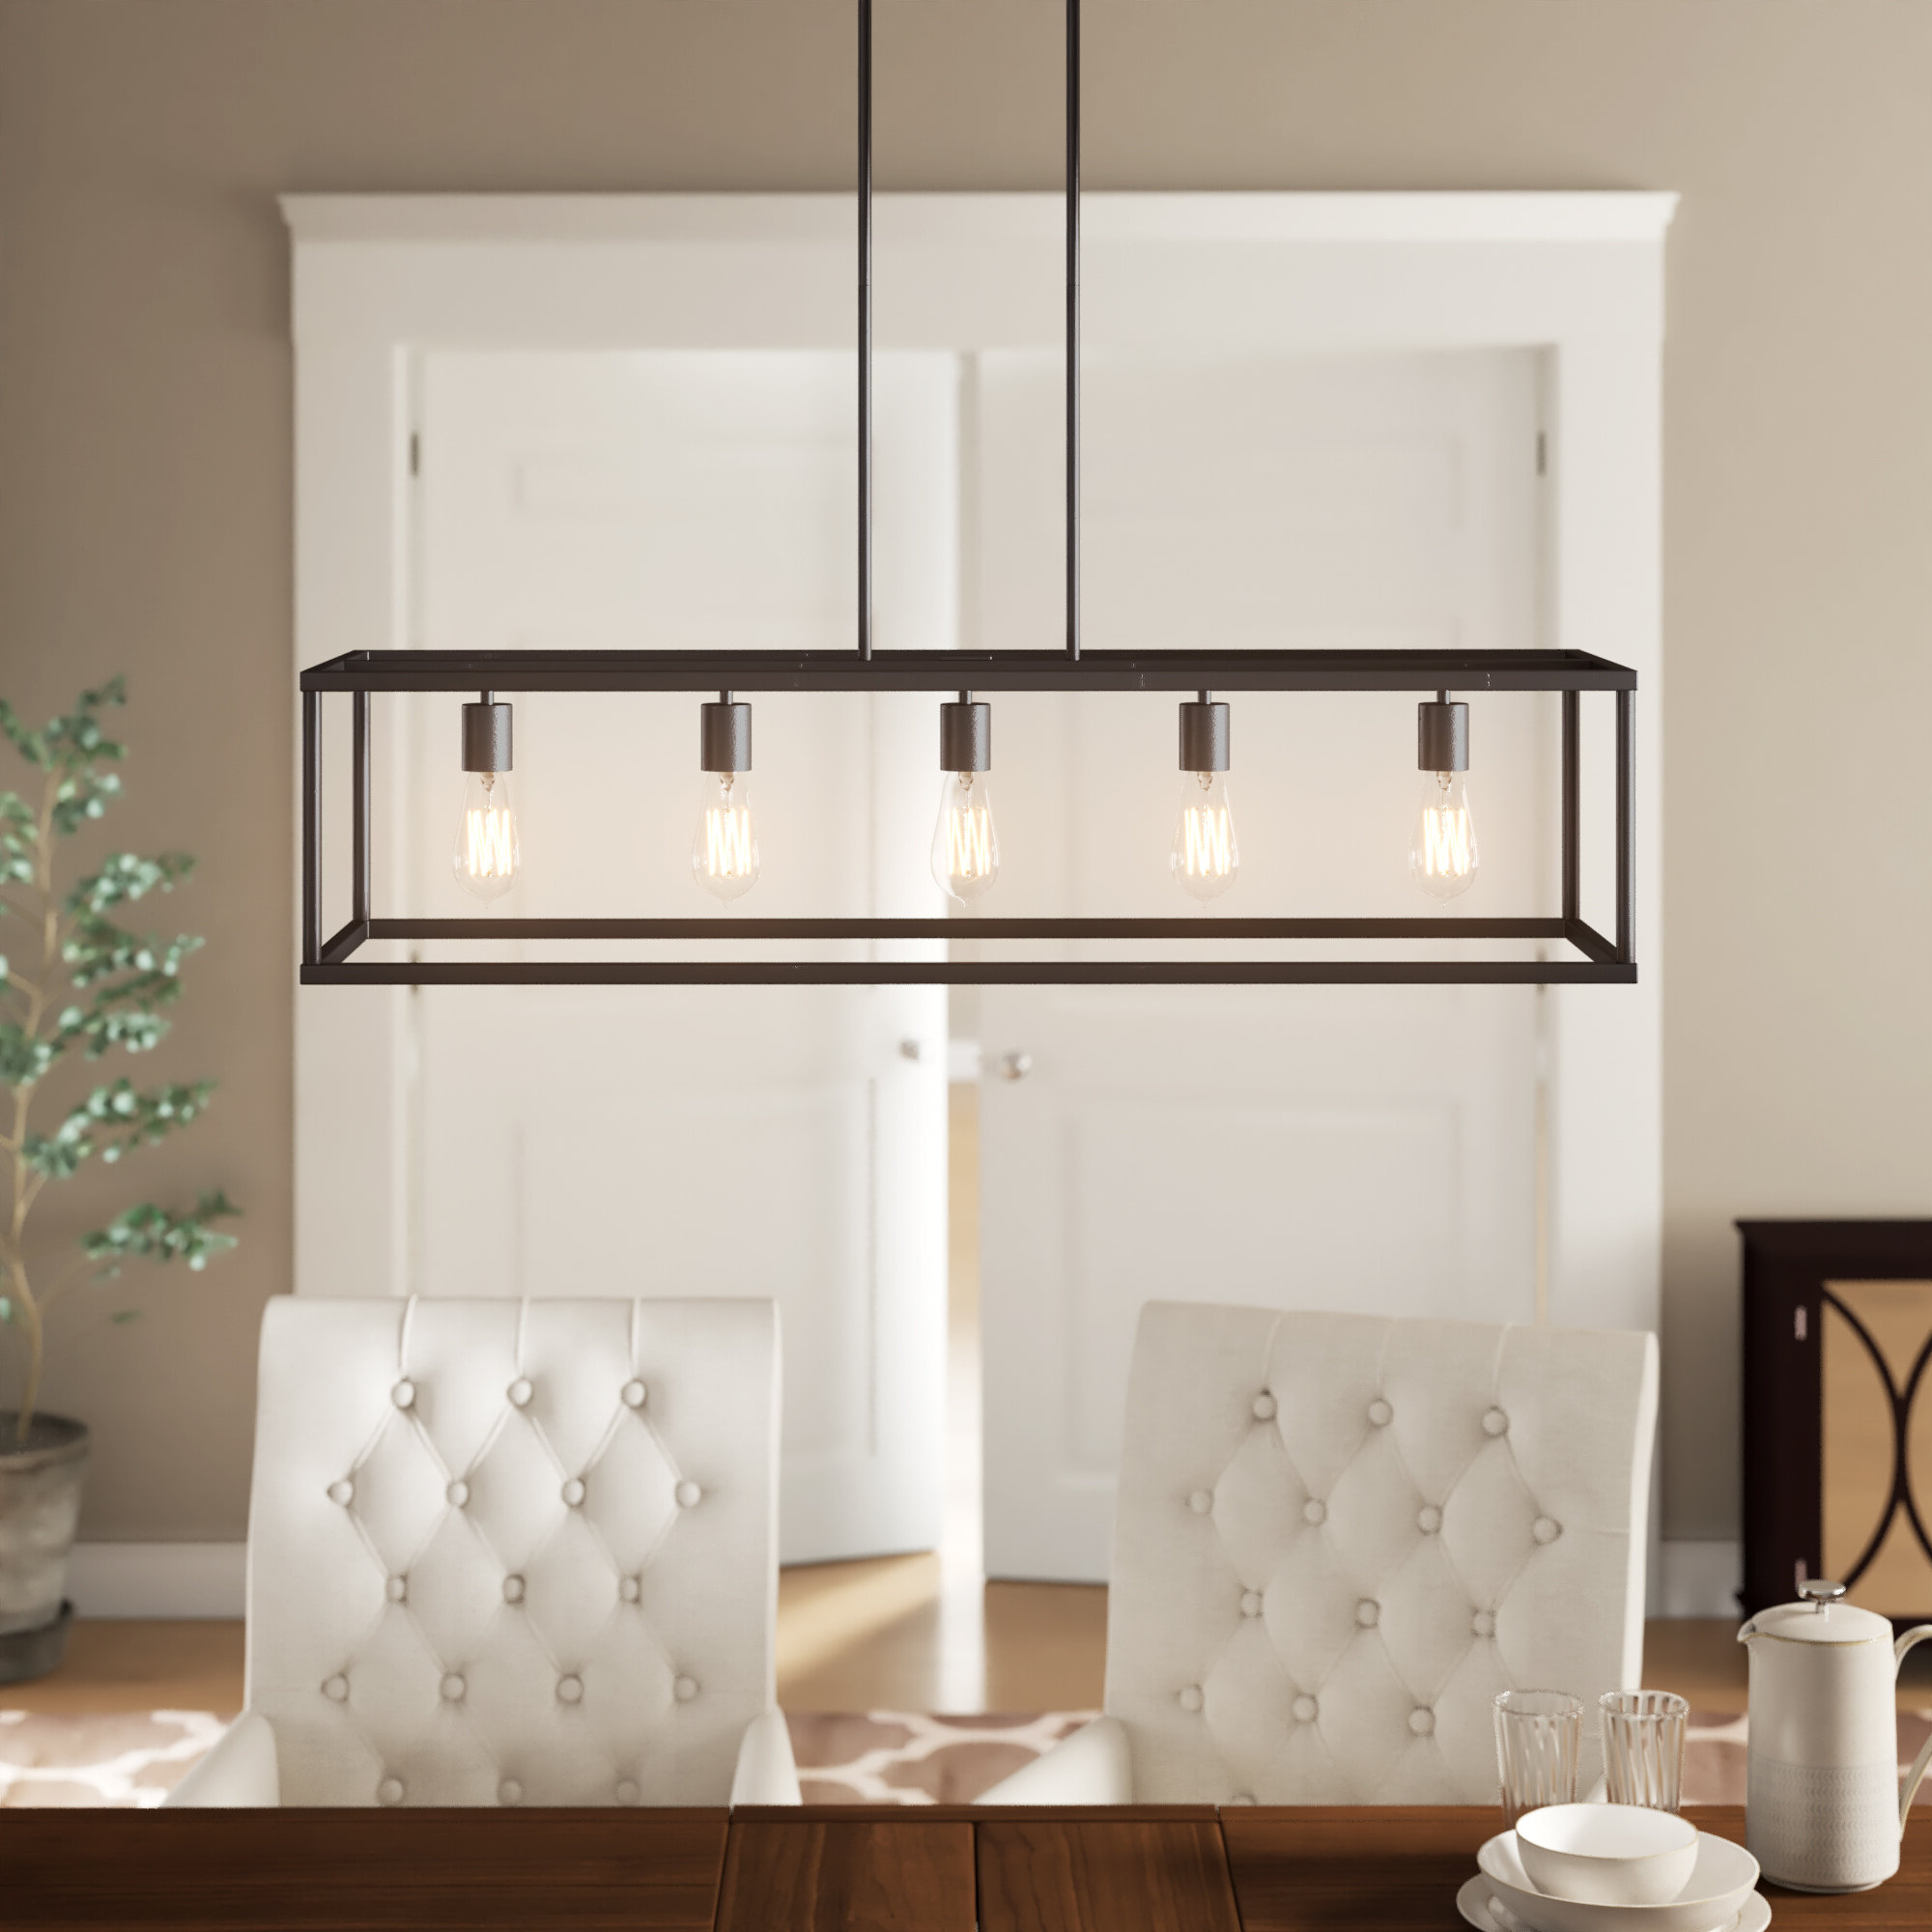 Widely Used Cassie 5 Light Kitchen Island Linear Pendant Pertaining To Novogratz Vintage 5 Light Kitchen Island Bulb Pendants (View 8 of 20)